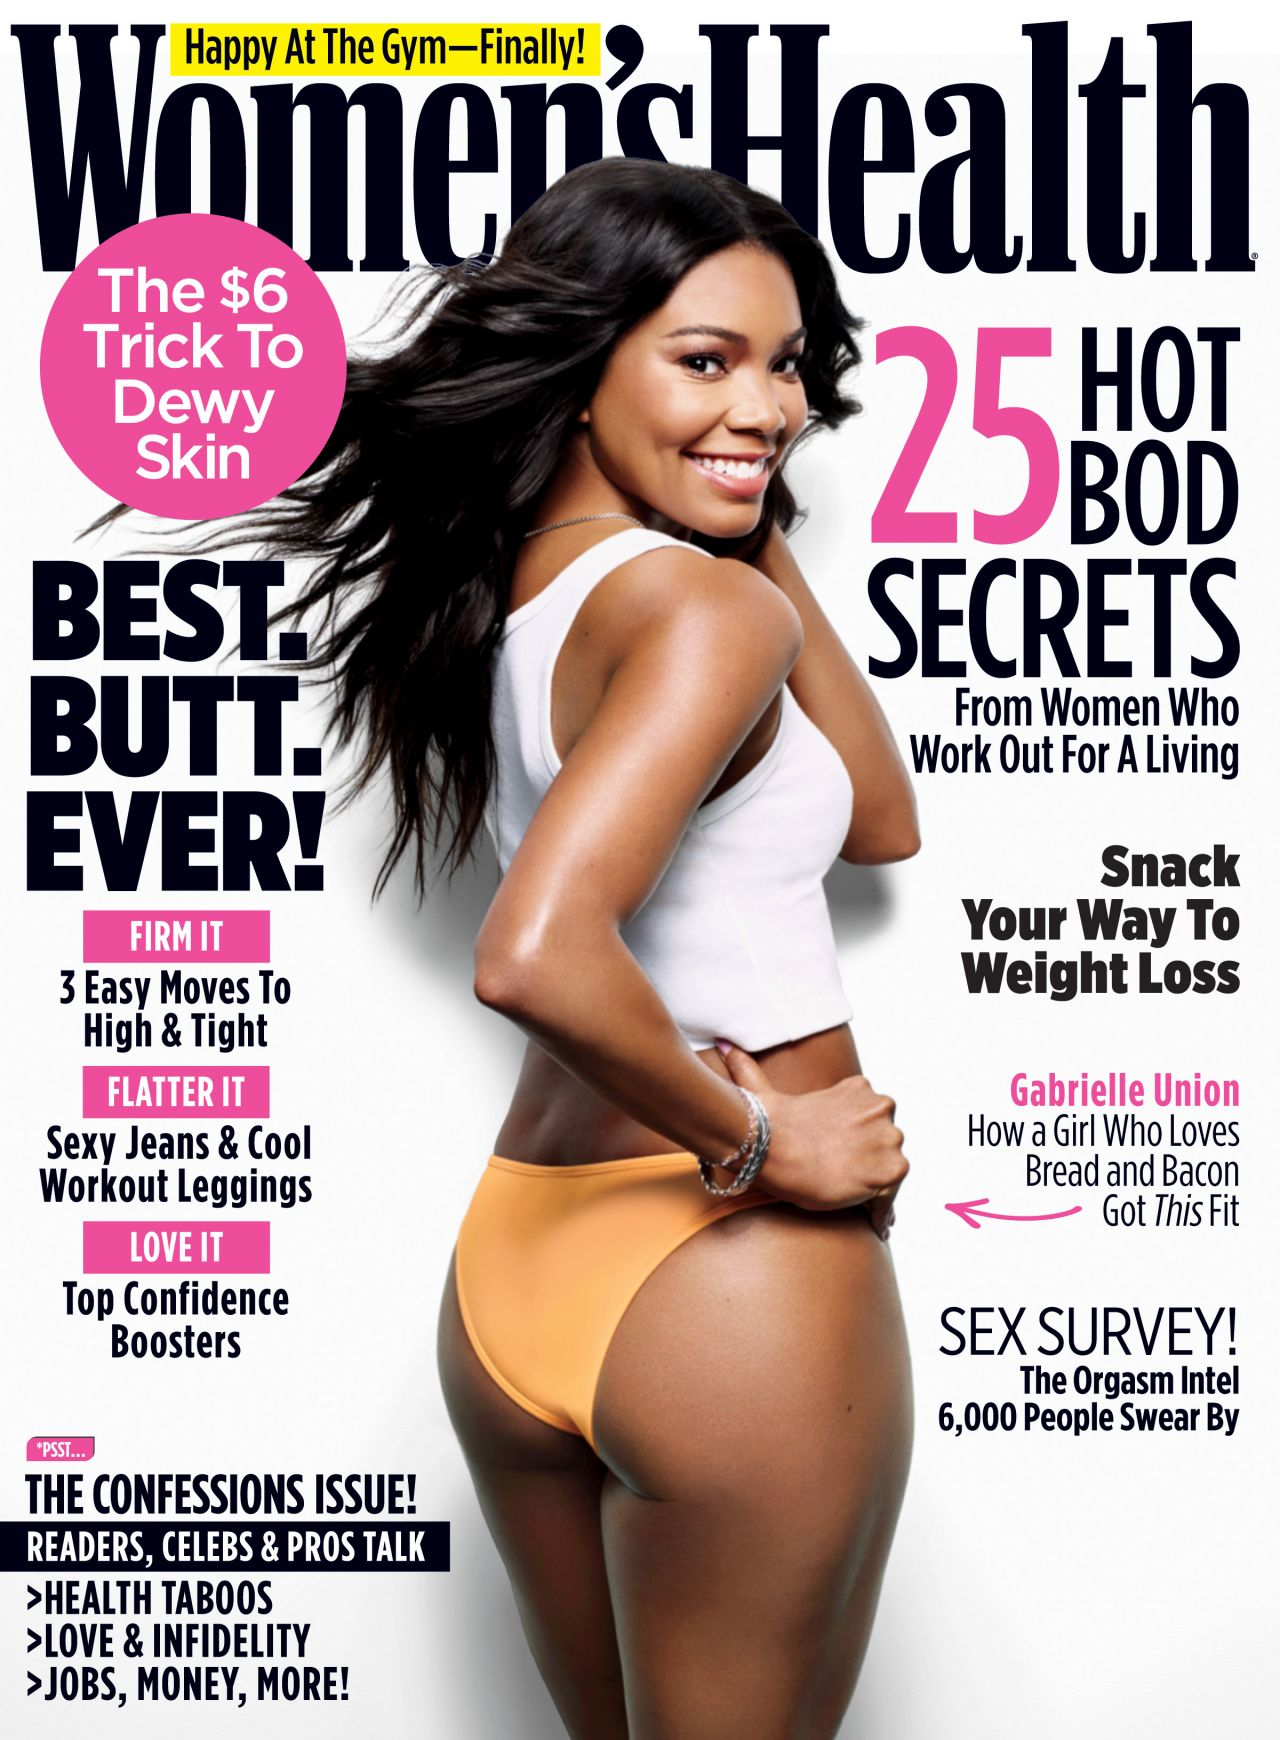 Gabrielle union sexiest pics nude